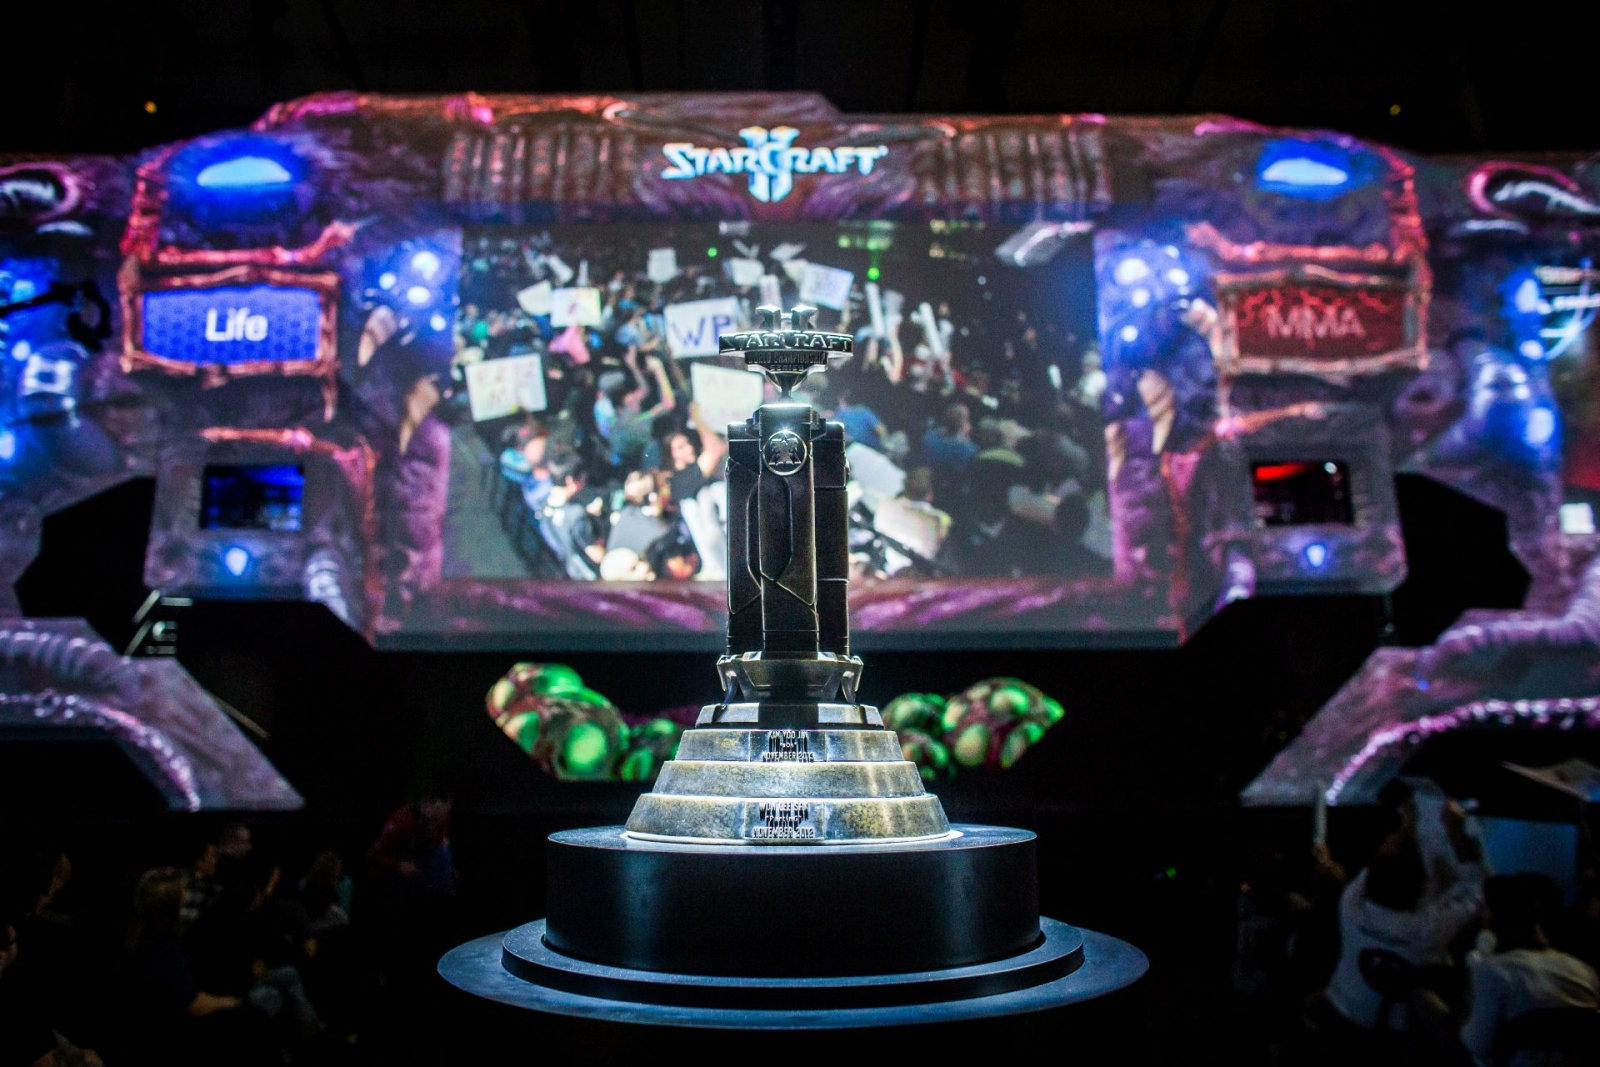 Blizzcon 2014 Starcraft 2 World Championship Series trophy on display